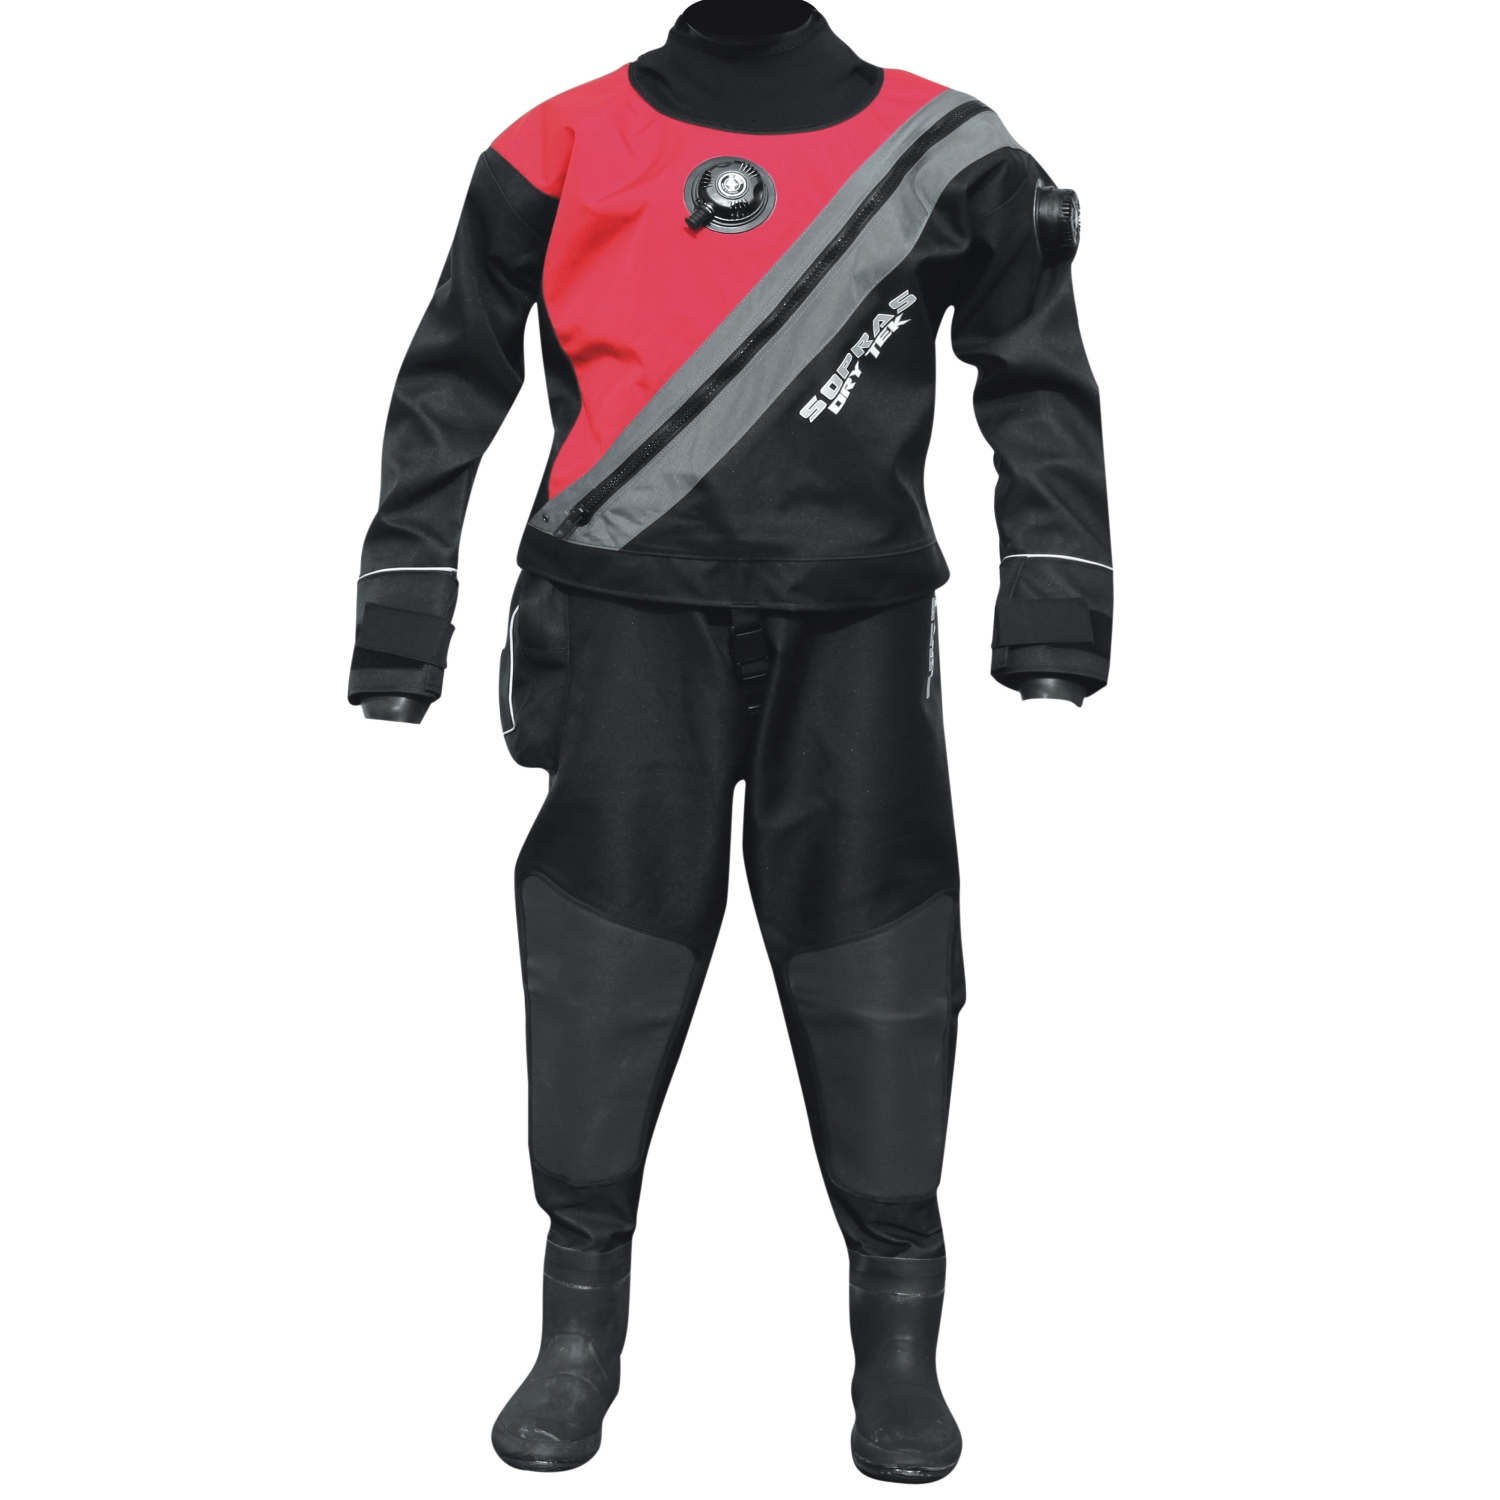 Dry suits with front zipper